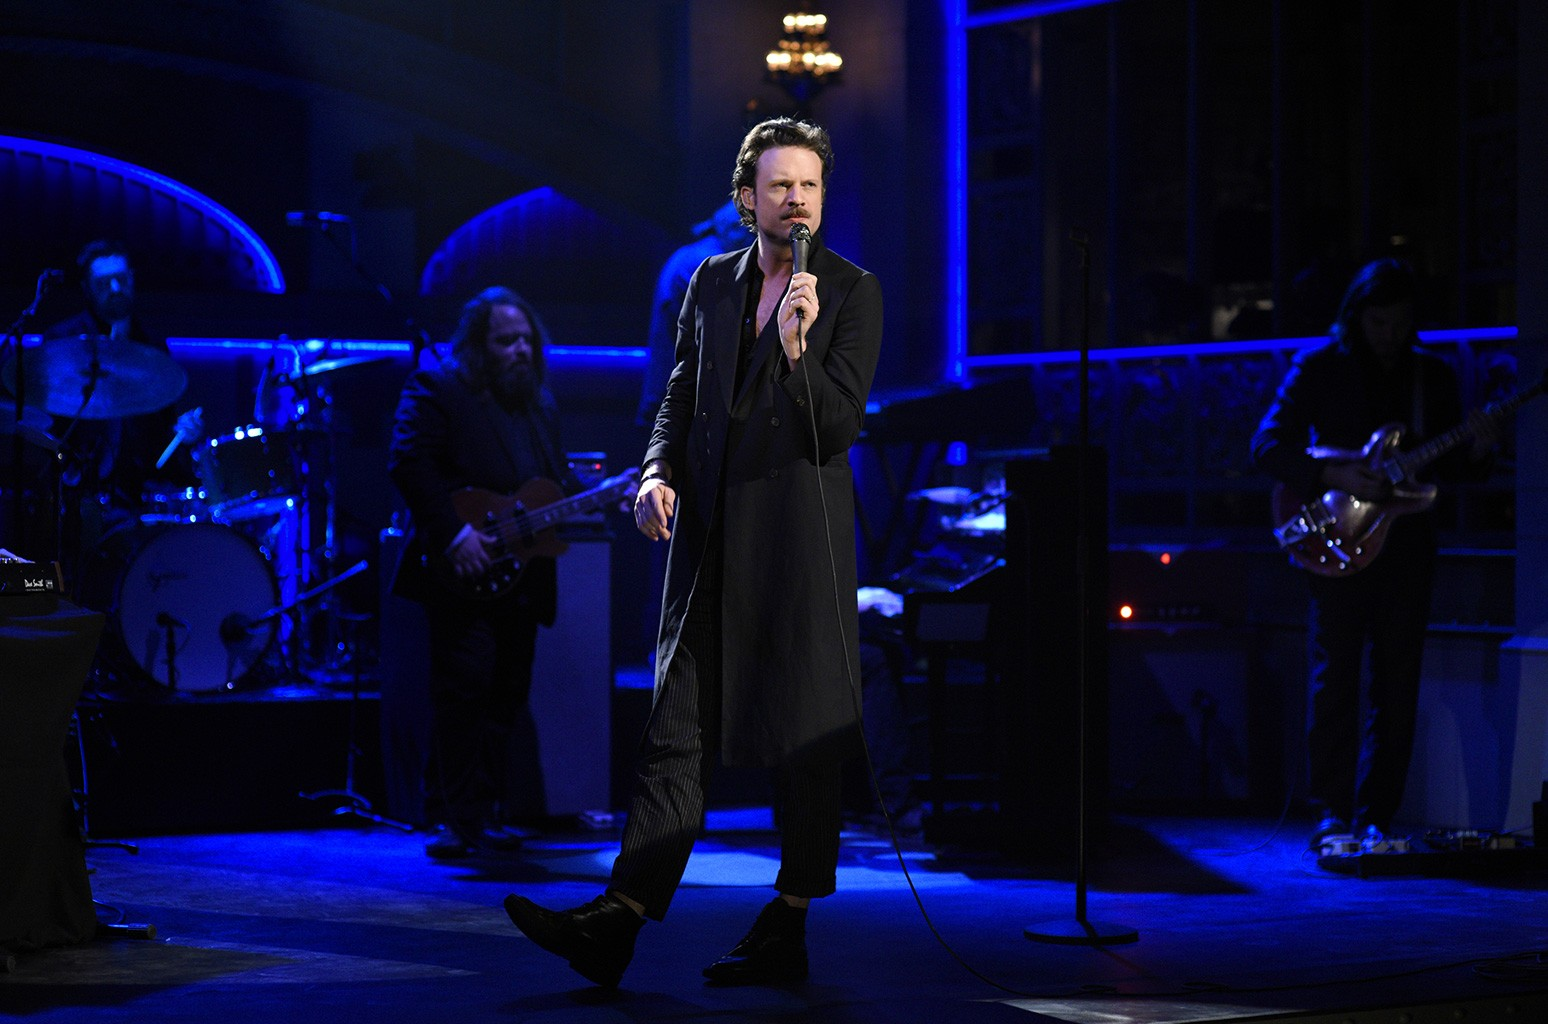 Father John Misty performs on Saturday Night Live on March 4, 2017.